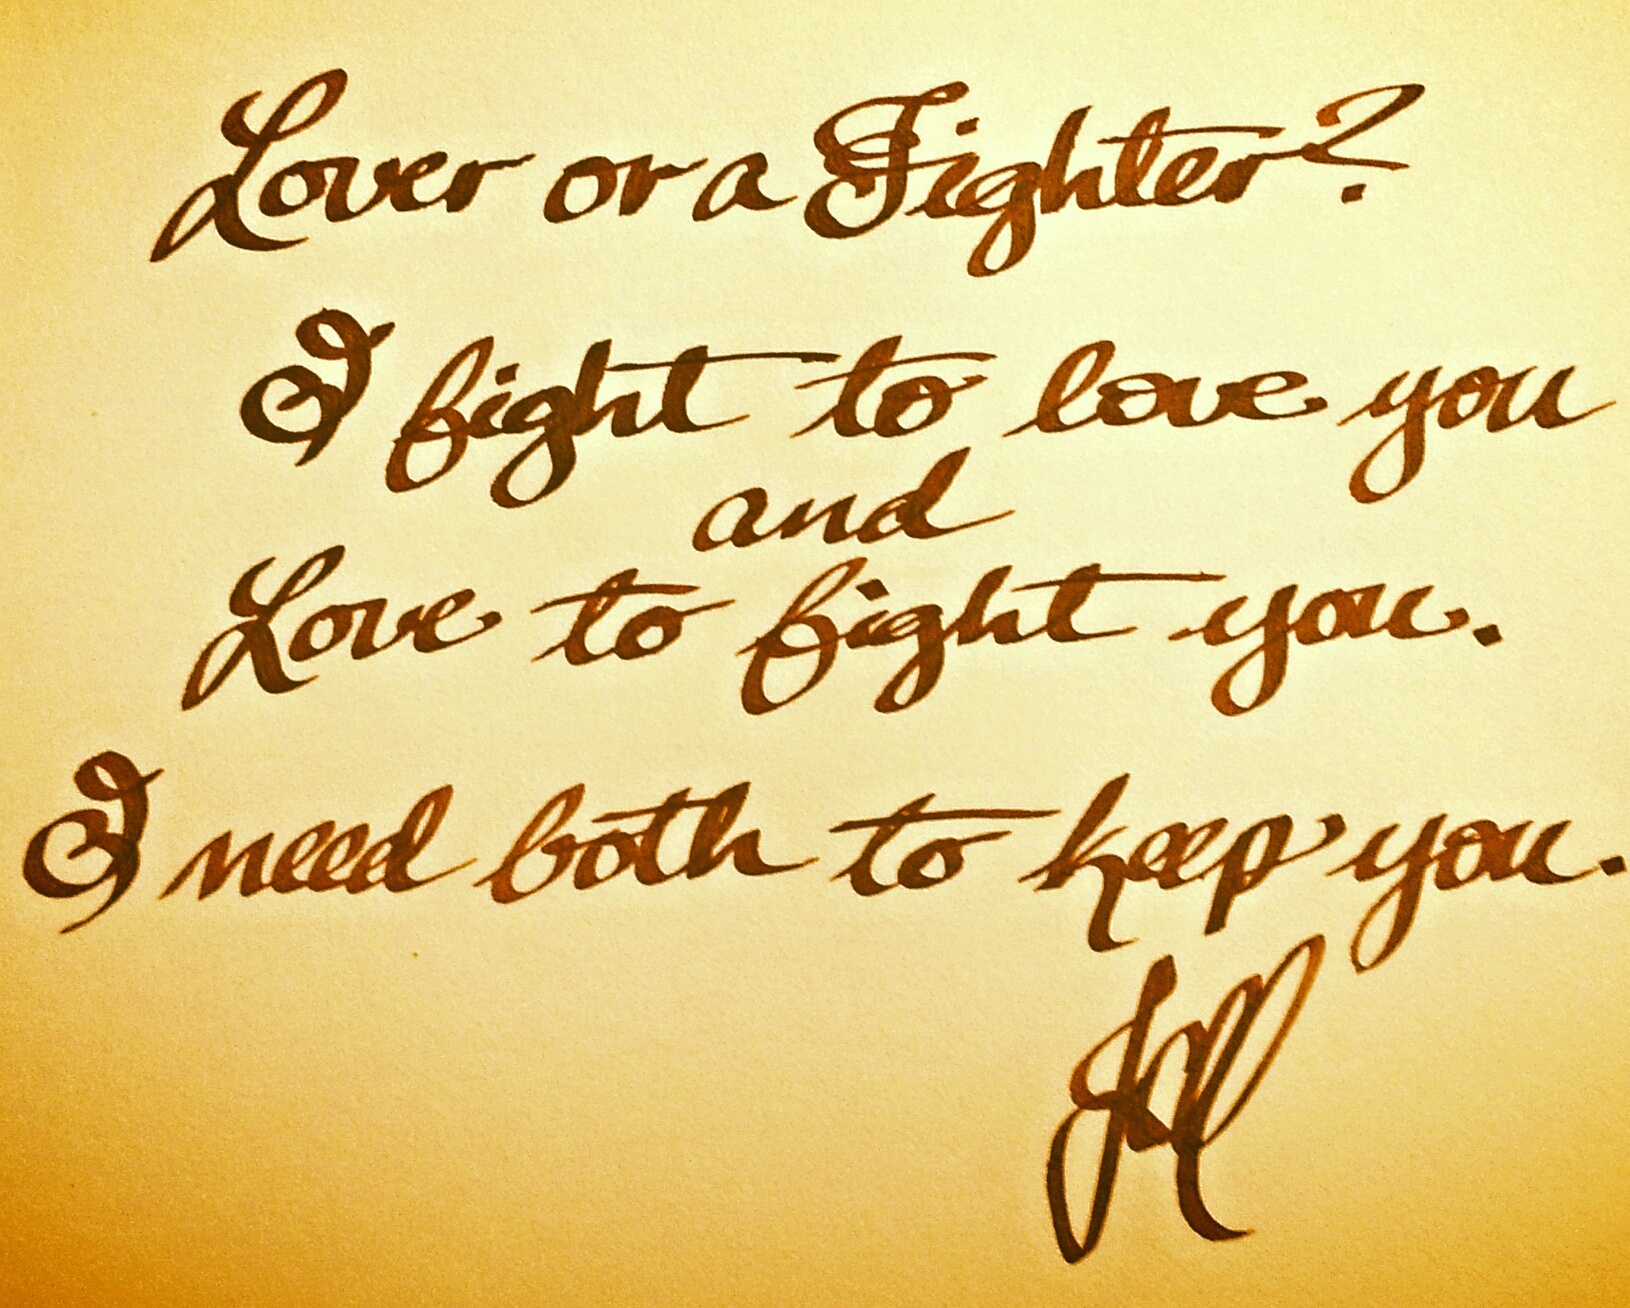 Lover or a Fighter? (Recollections Series)